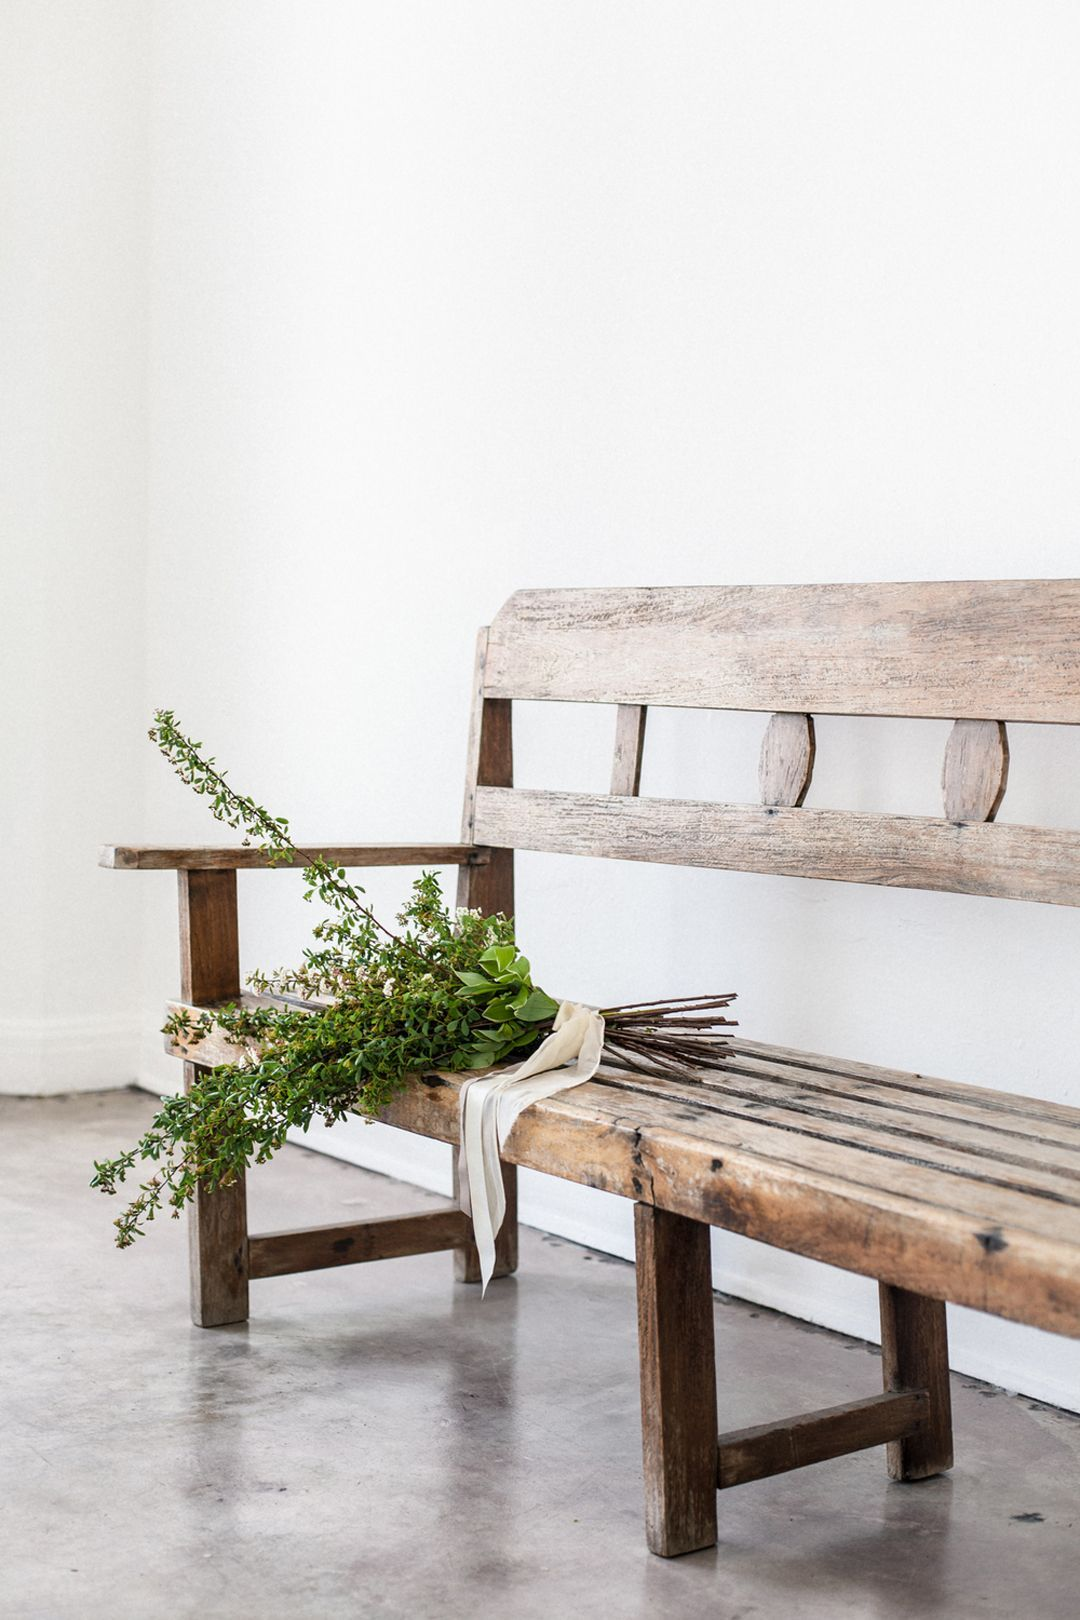 Scandinavian farmhouse farmhouse style white and wood entryway bench